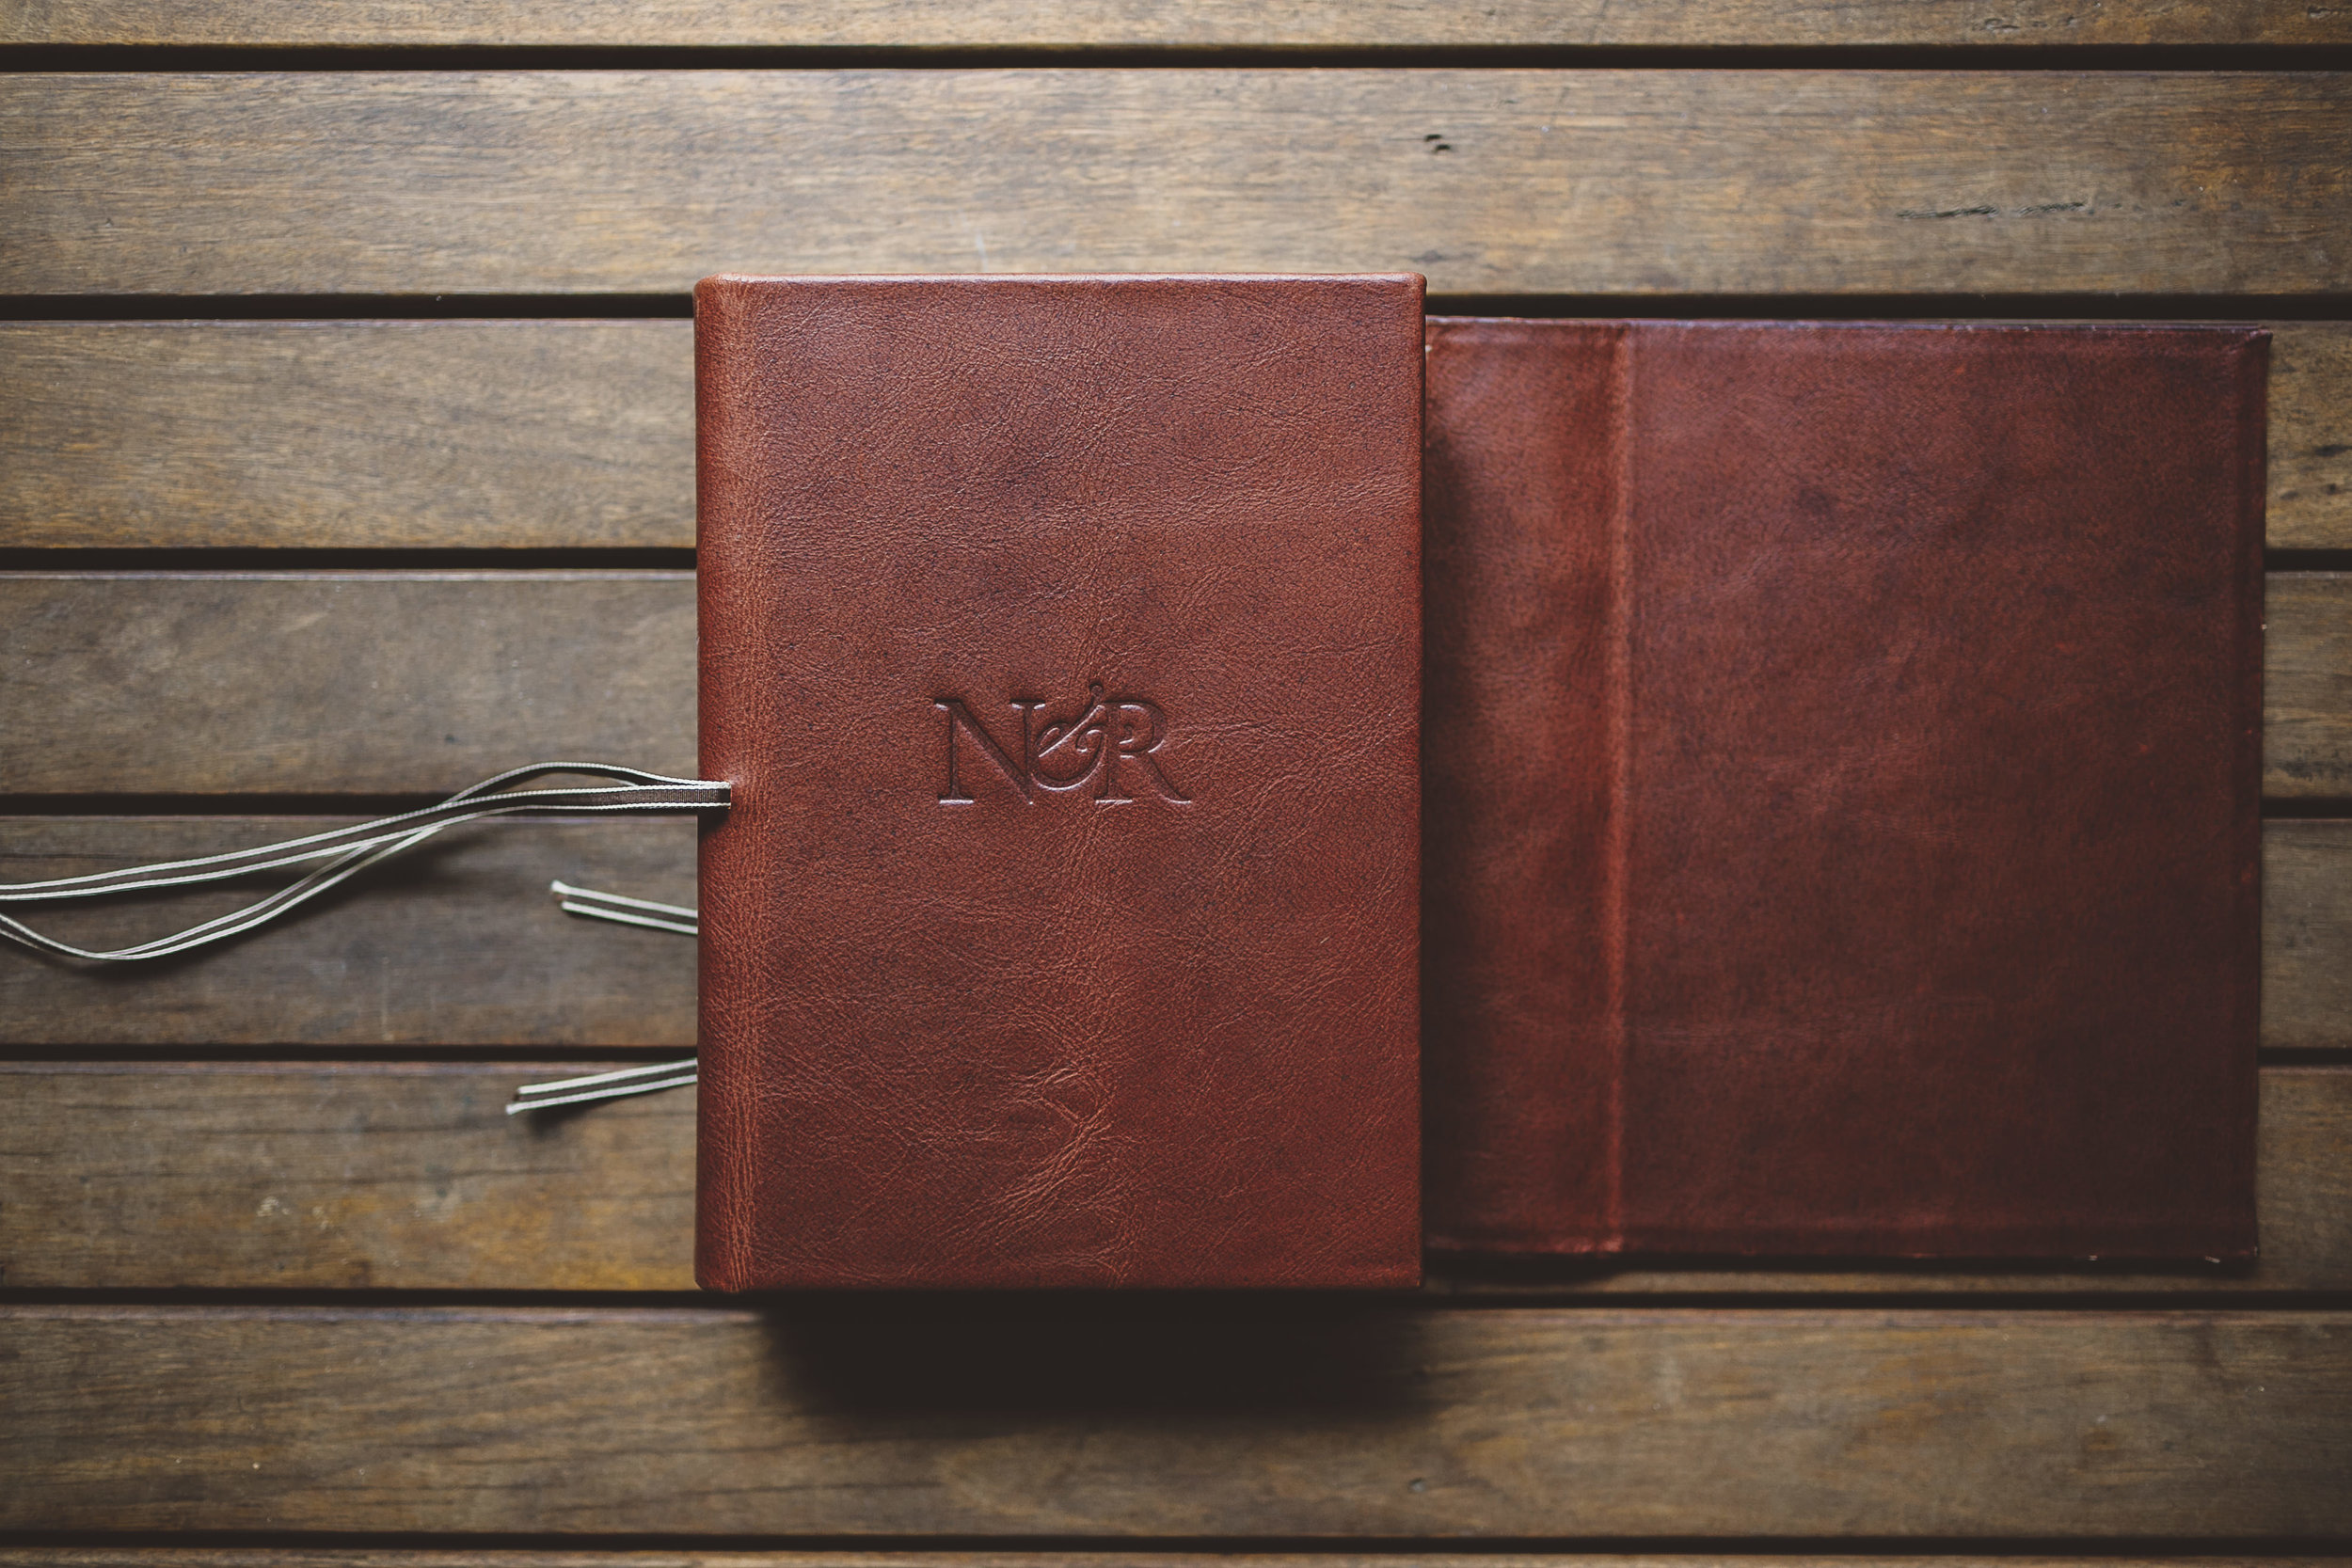 Wraparound leather cover and custom embossed logo with your initials